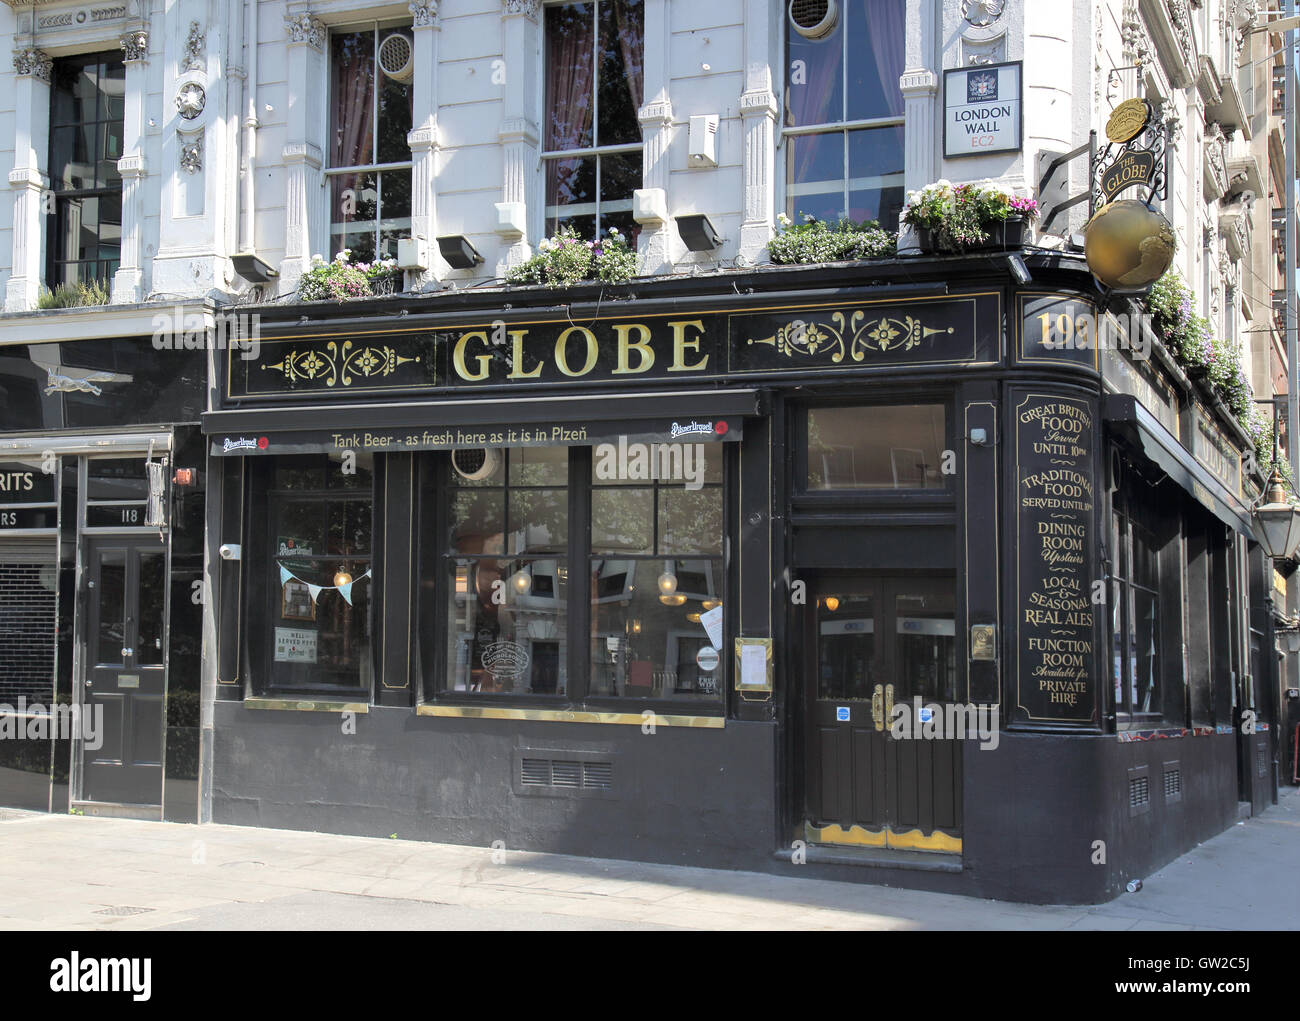 the globe pub at london wall - Stock Image